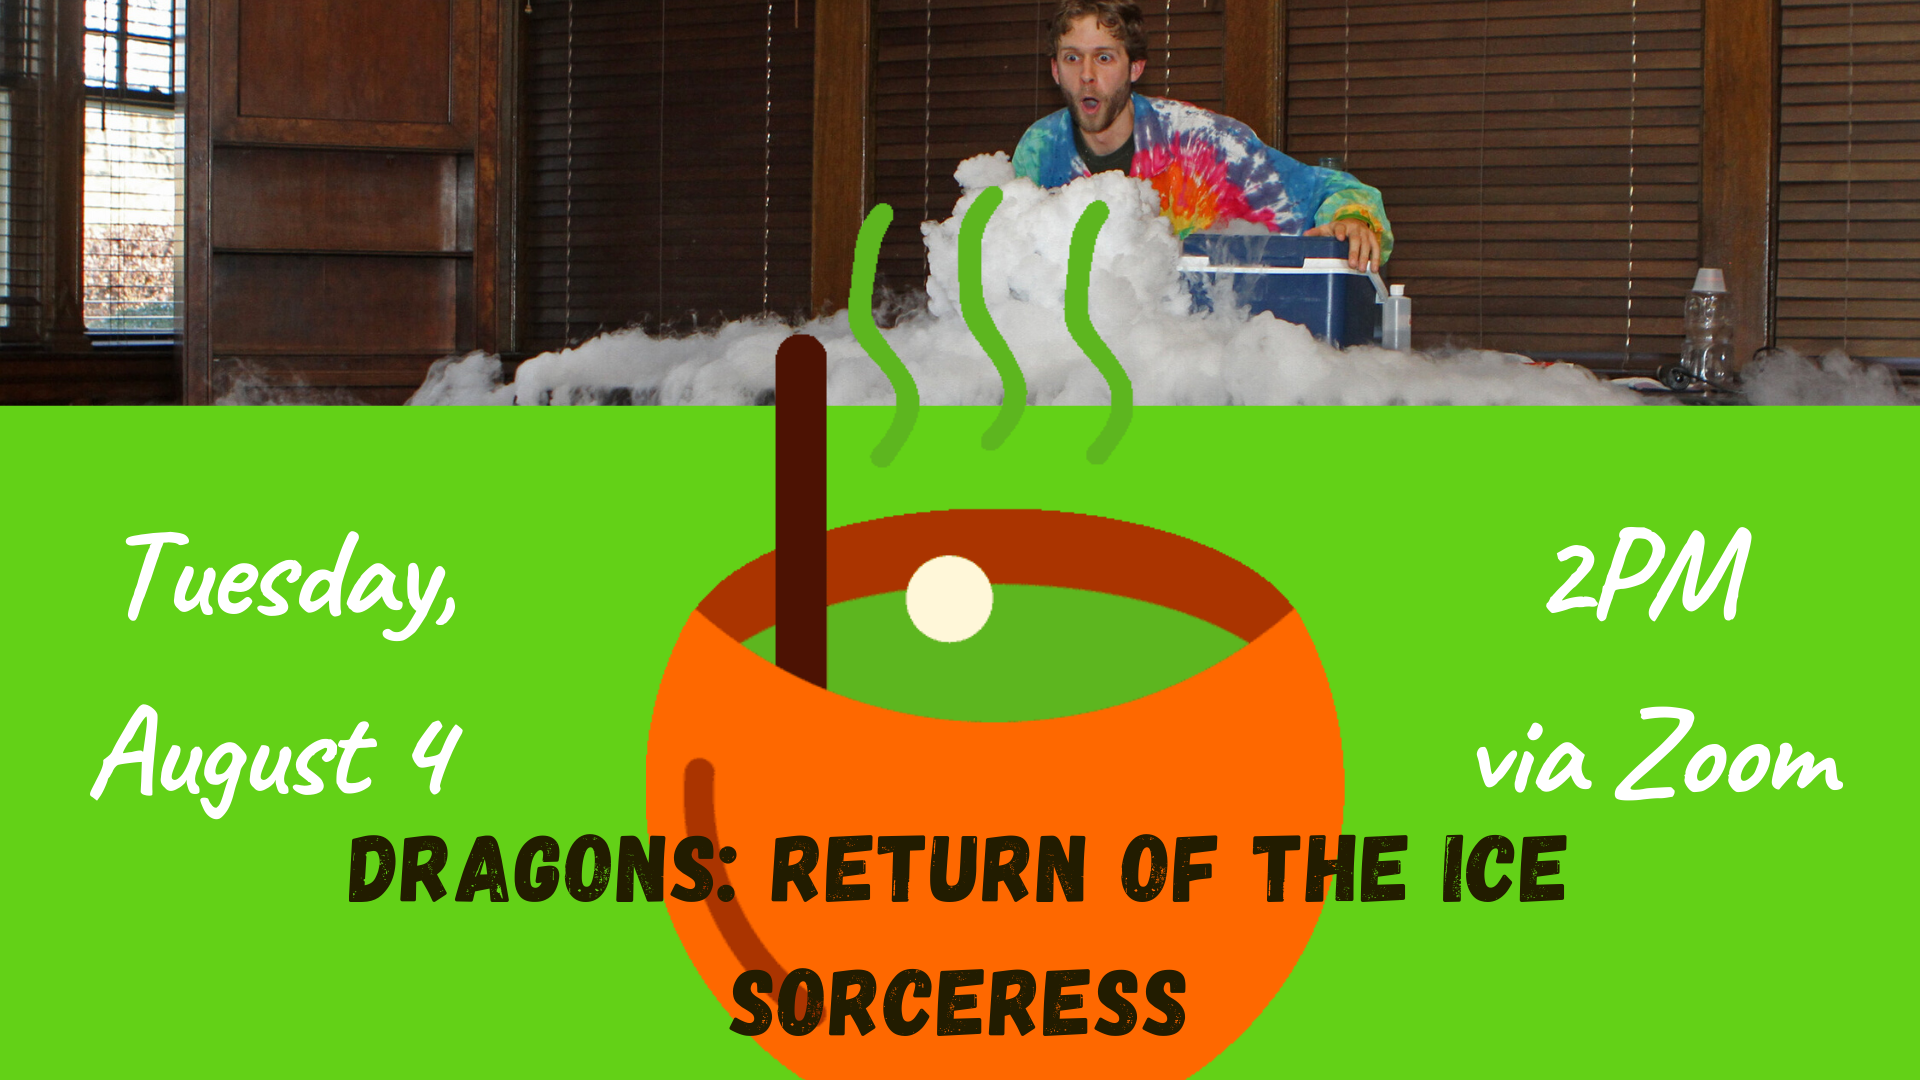 FB Event DRAGONS_ RETURN OF THE ICE SORCERESS 8.4.20.png